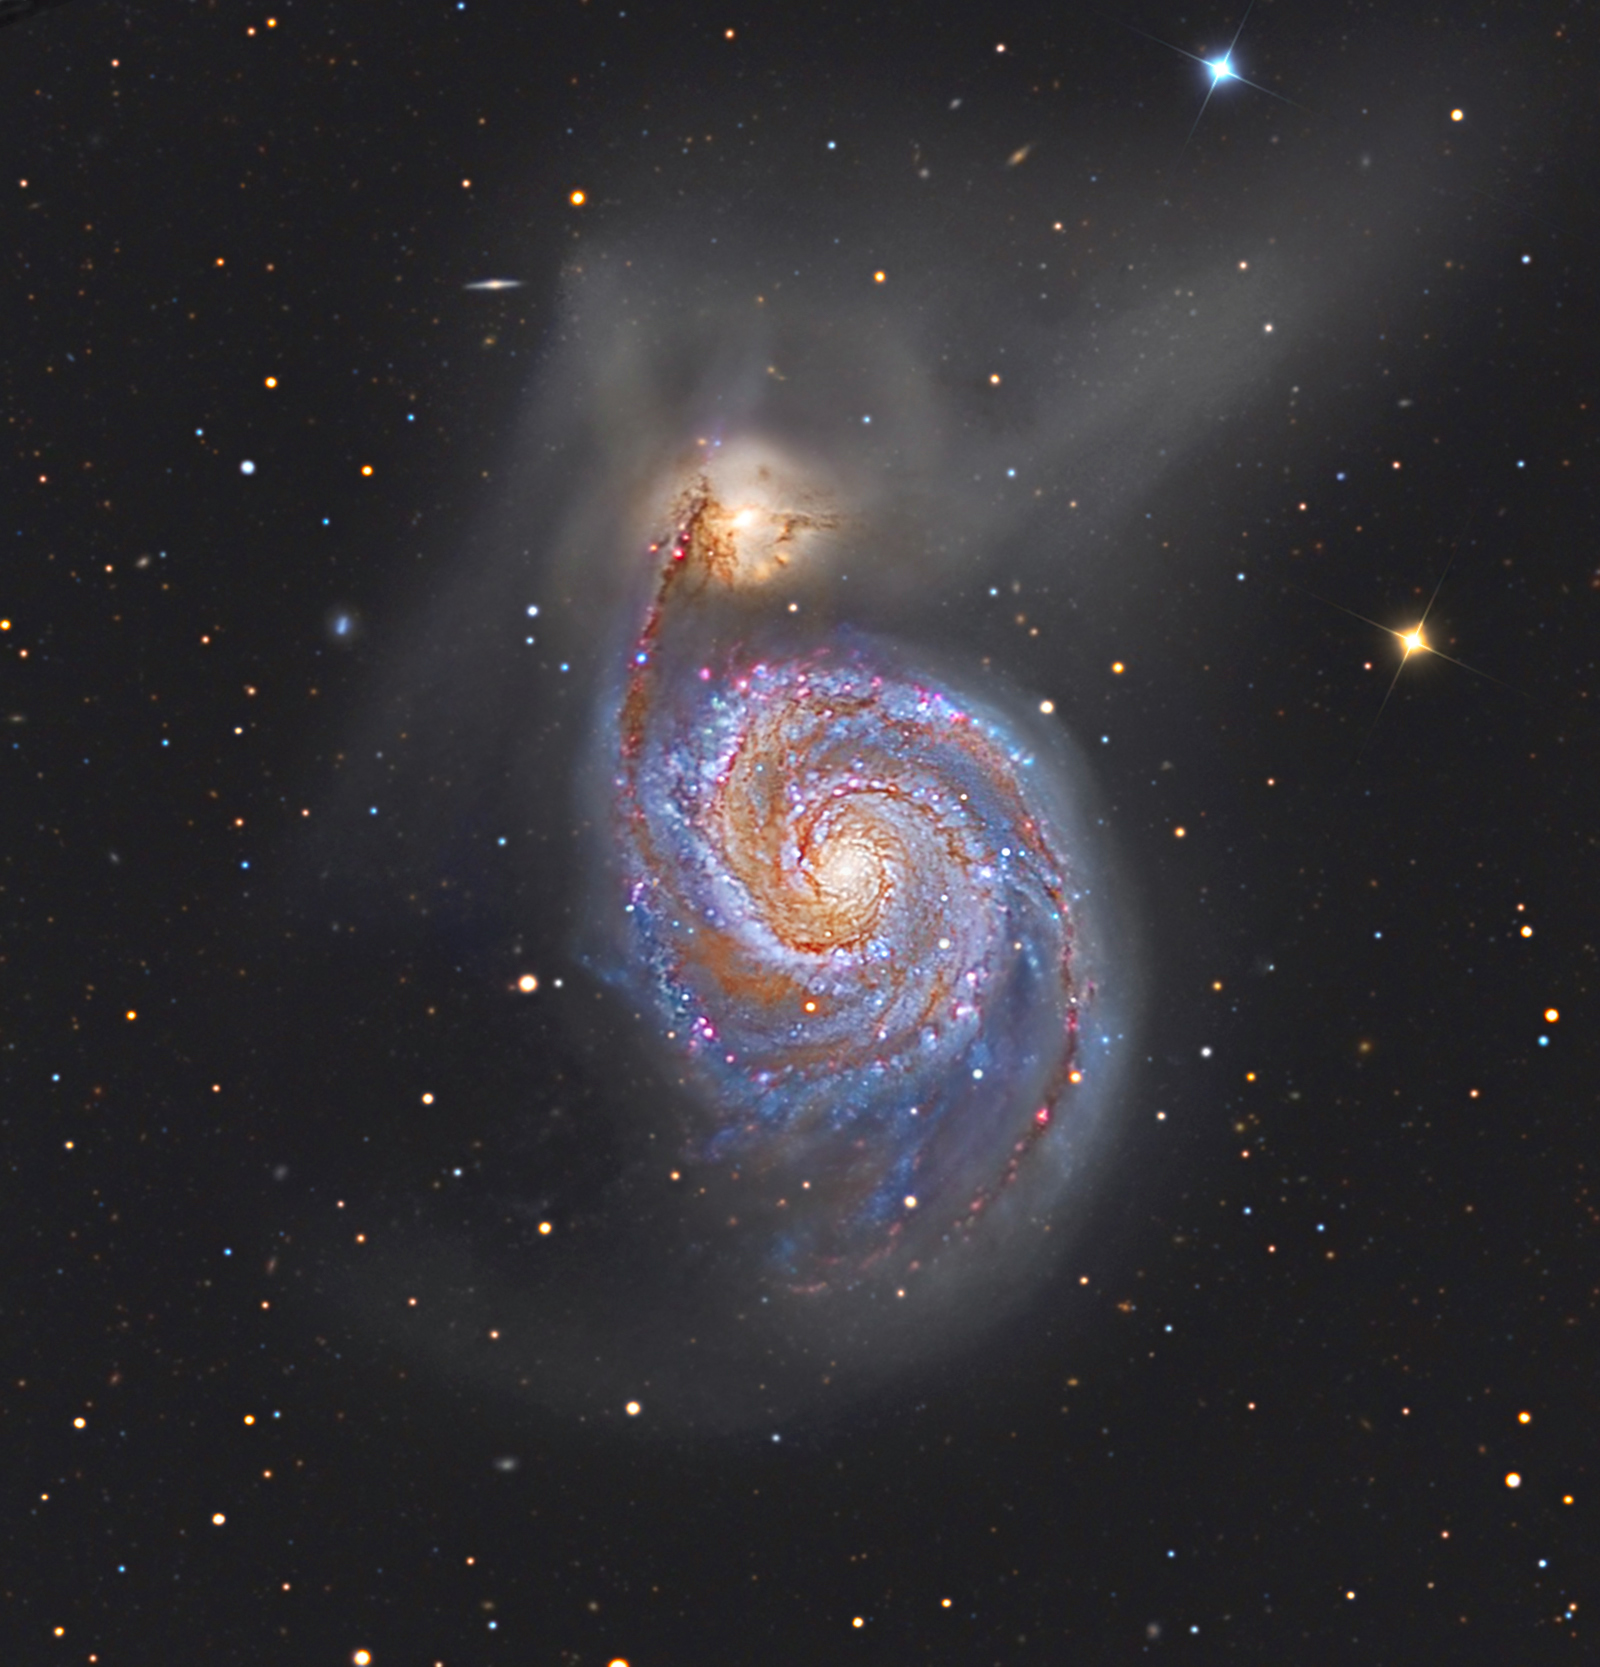 whirlpool galaxy hubble nasa center picture - photo #5